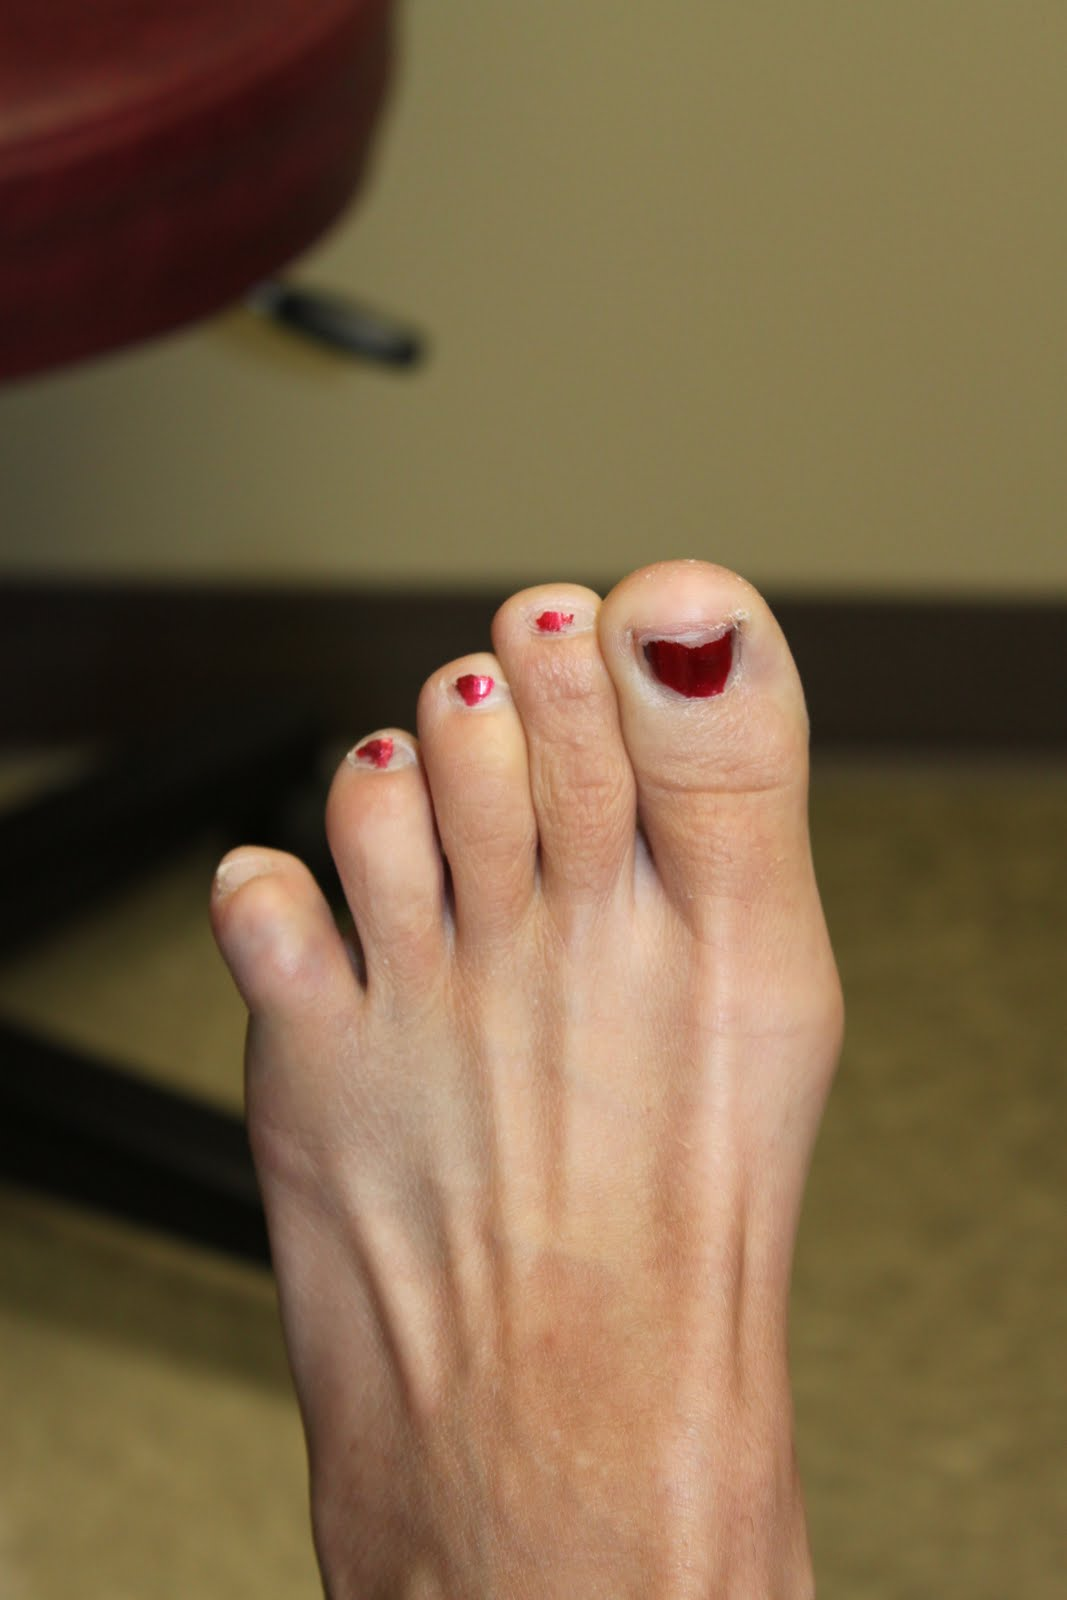 this funky junky: broken pinkie toe! what can you do?